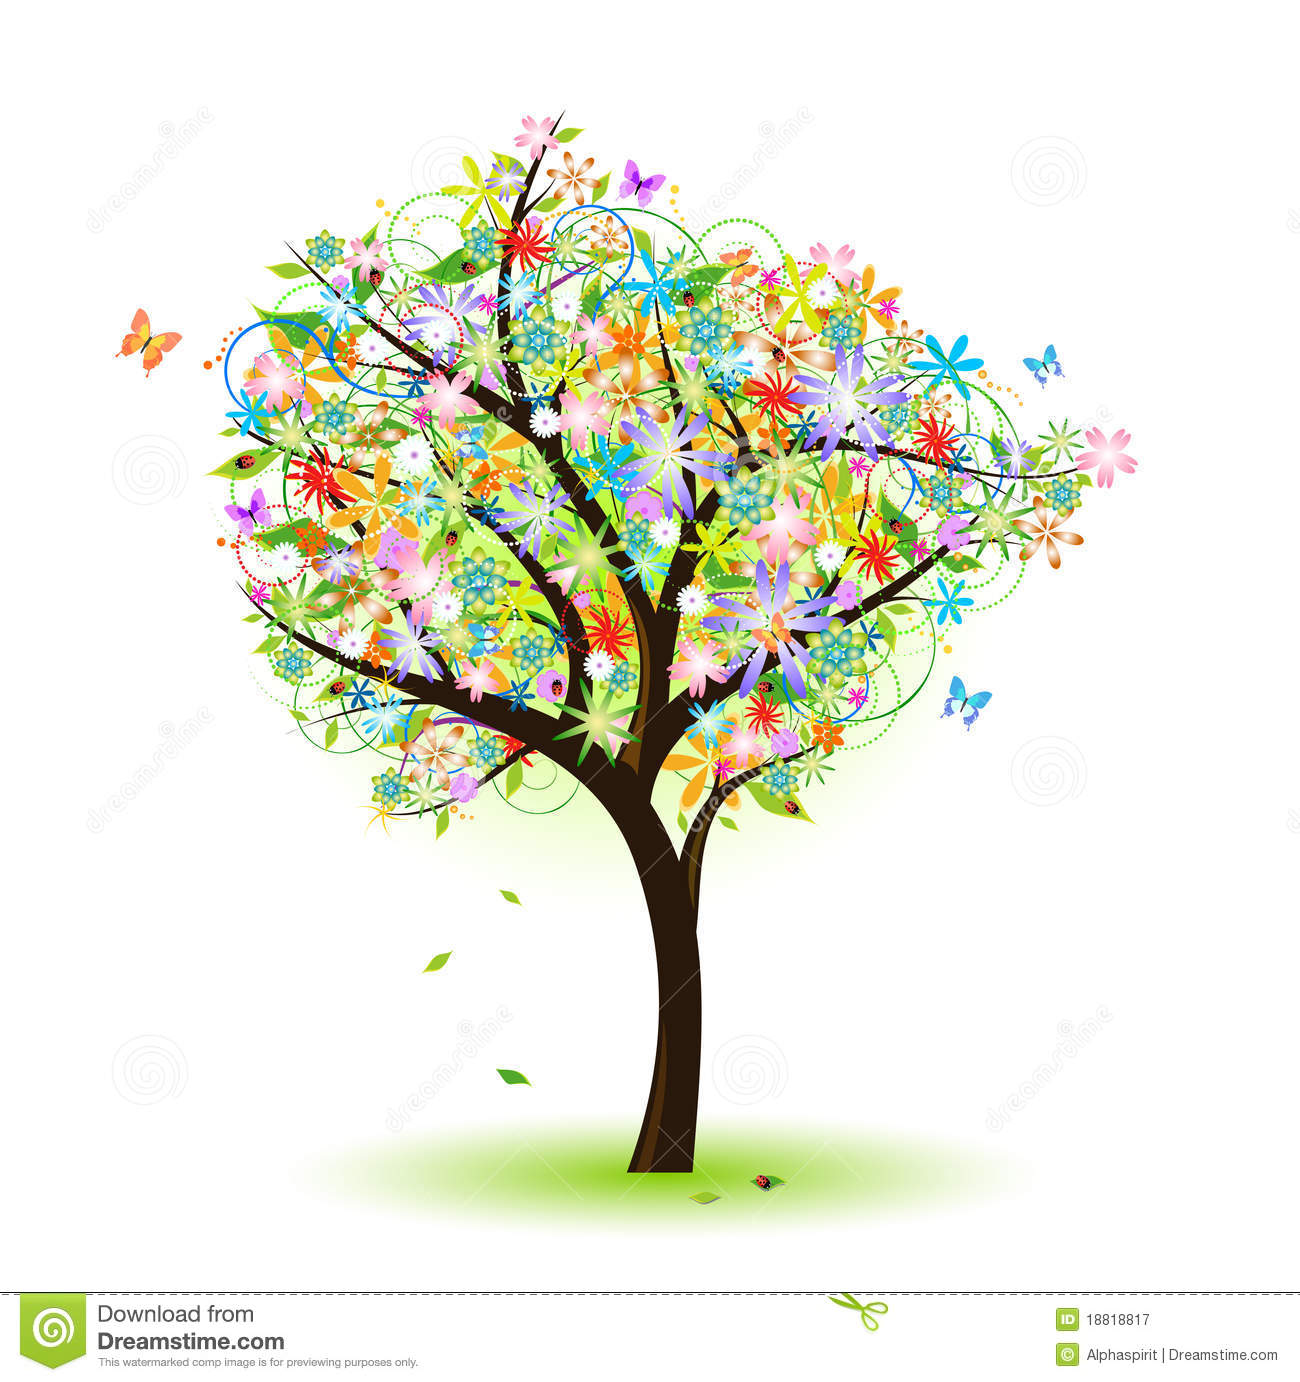 Colorful tree stock vector. Illustration of vector, ecology - 18818817